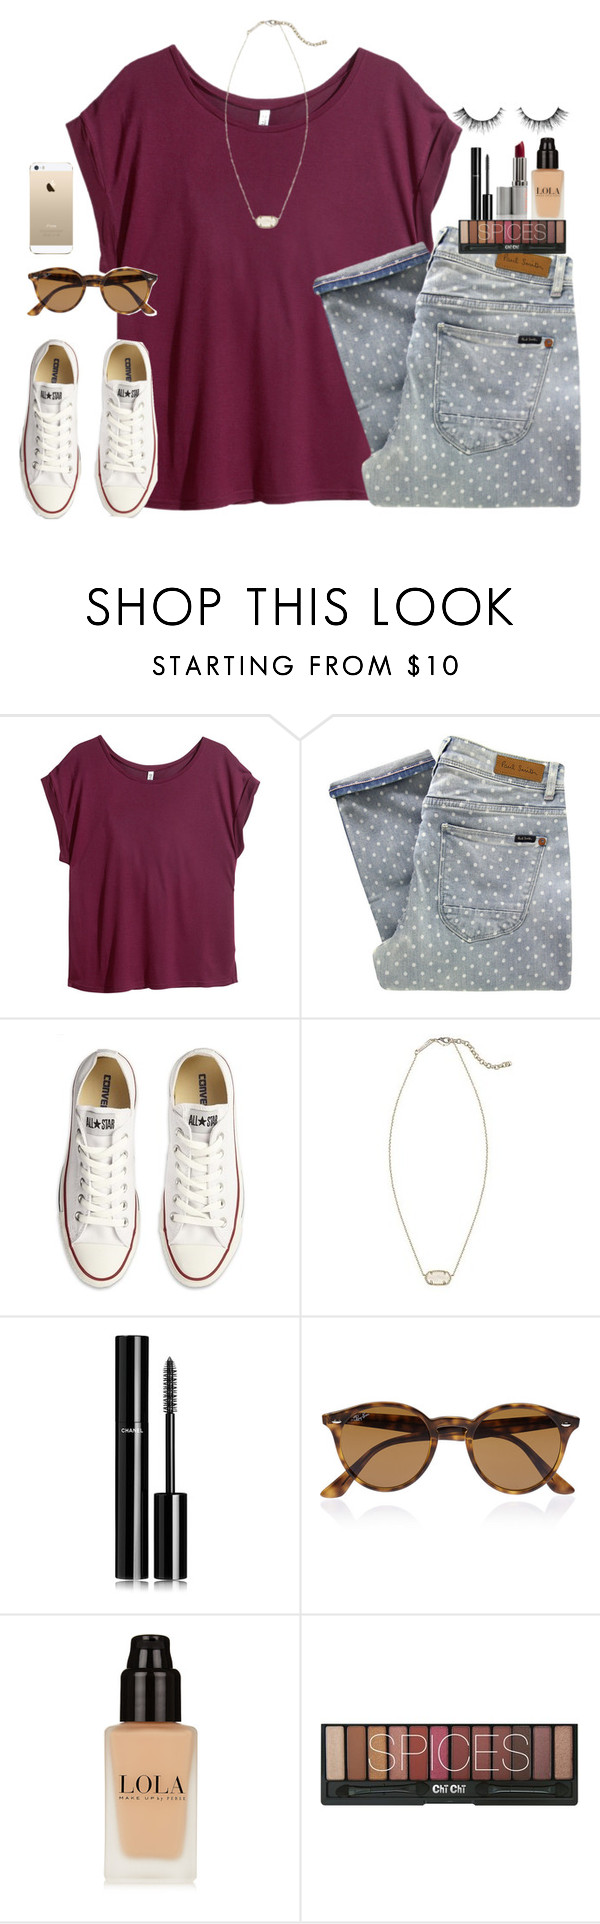 """""""No school for me tomorrow!!!"""" by madison426 ❤ liked on Polyvore featuring H&M, Paul by Paul Smith, Converse, Kendra Scott, Chanel, Ray-Ban, FingerPrint Jewellry, women's clothing, women's fashion and women"""